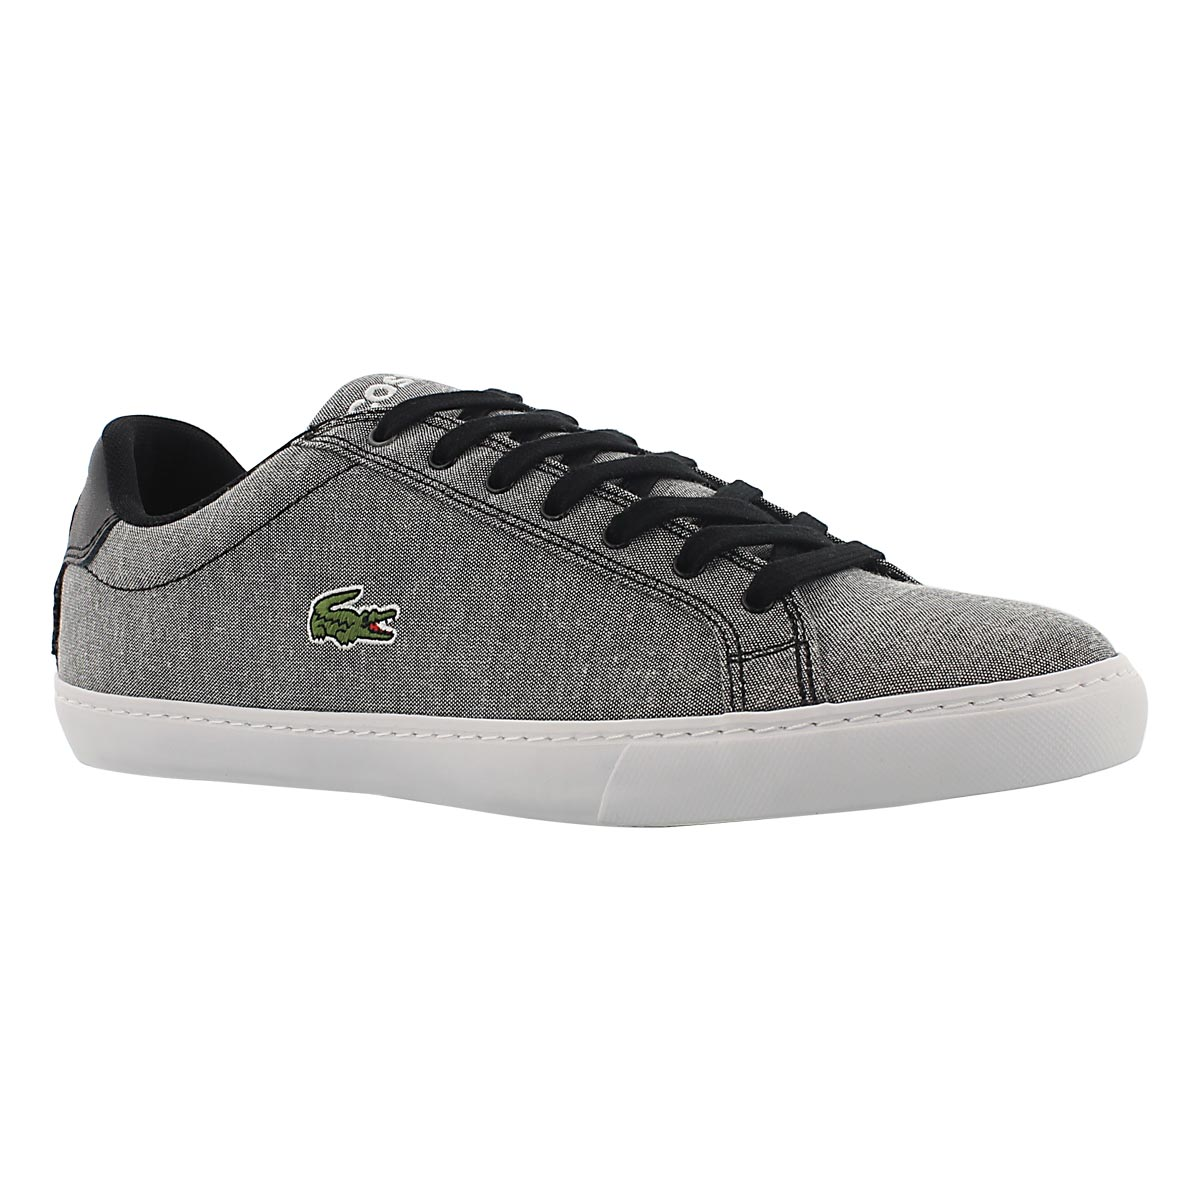 Mns Grad vulc blk canv fashion sneak